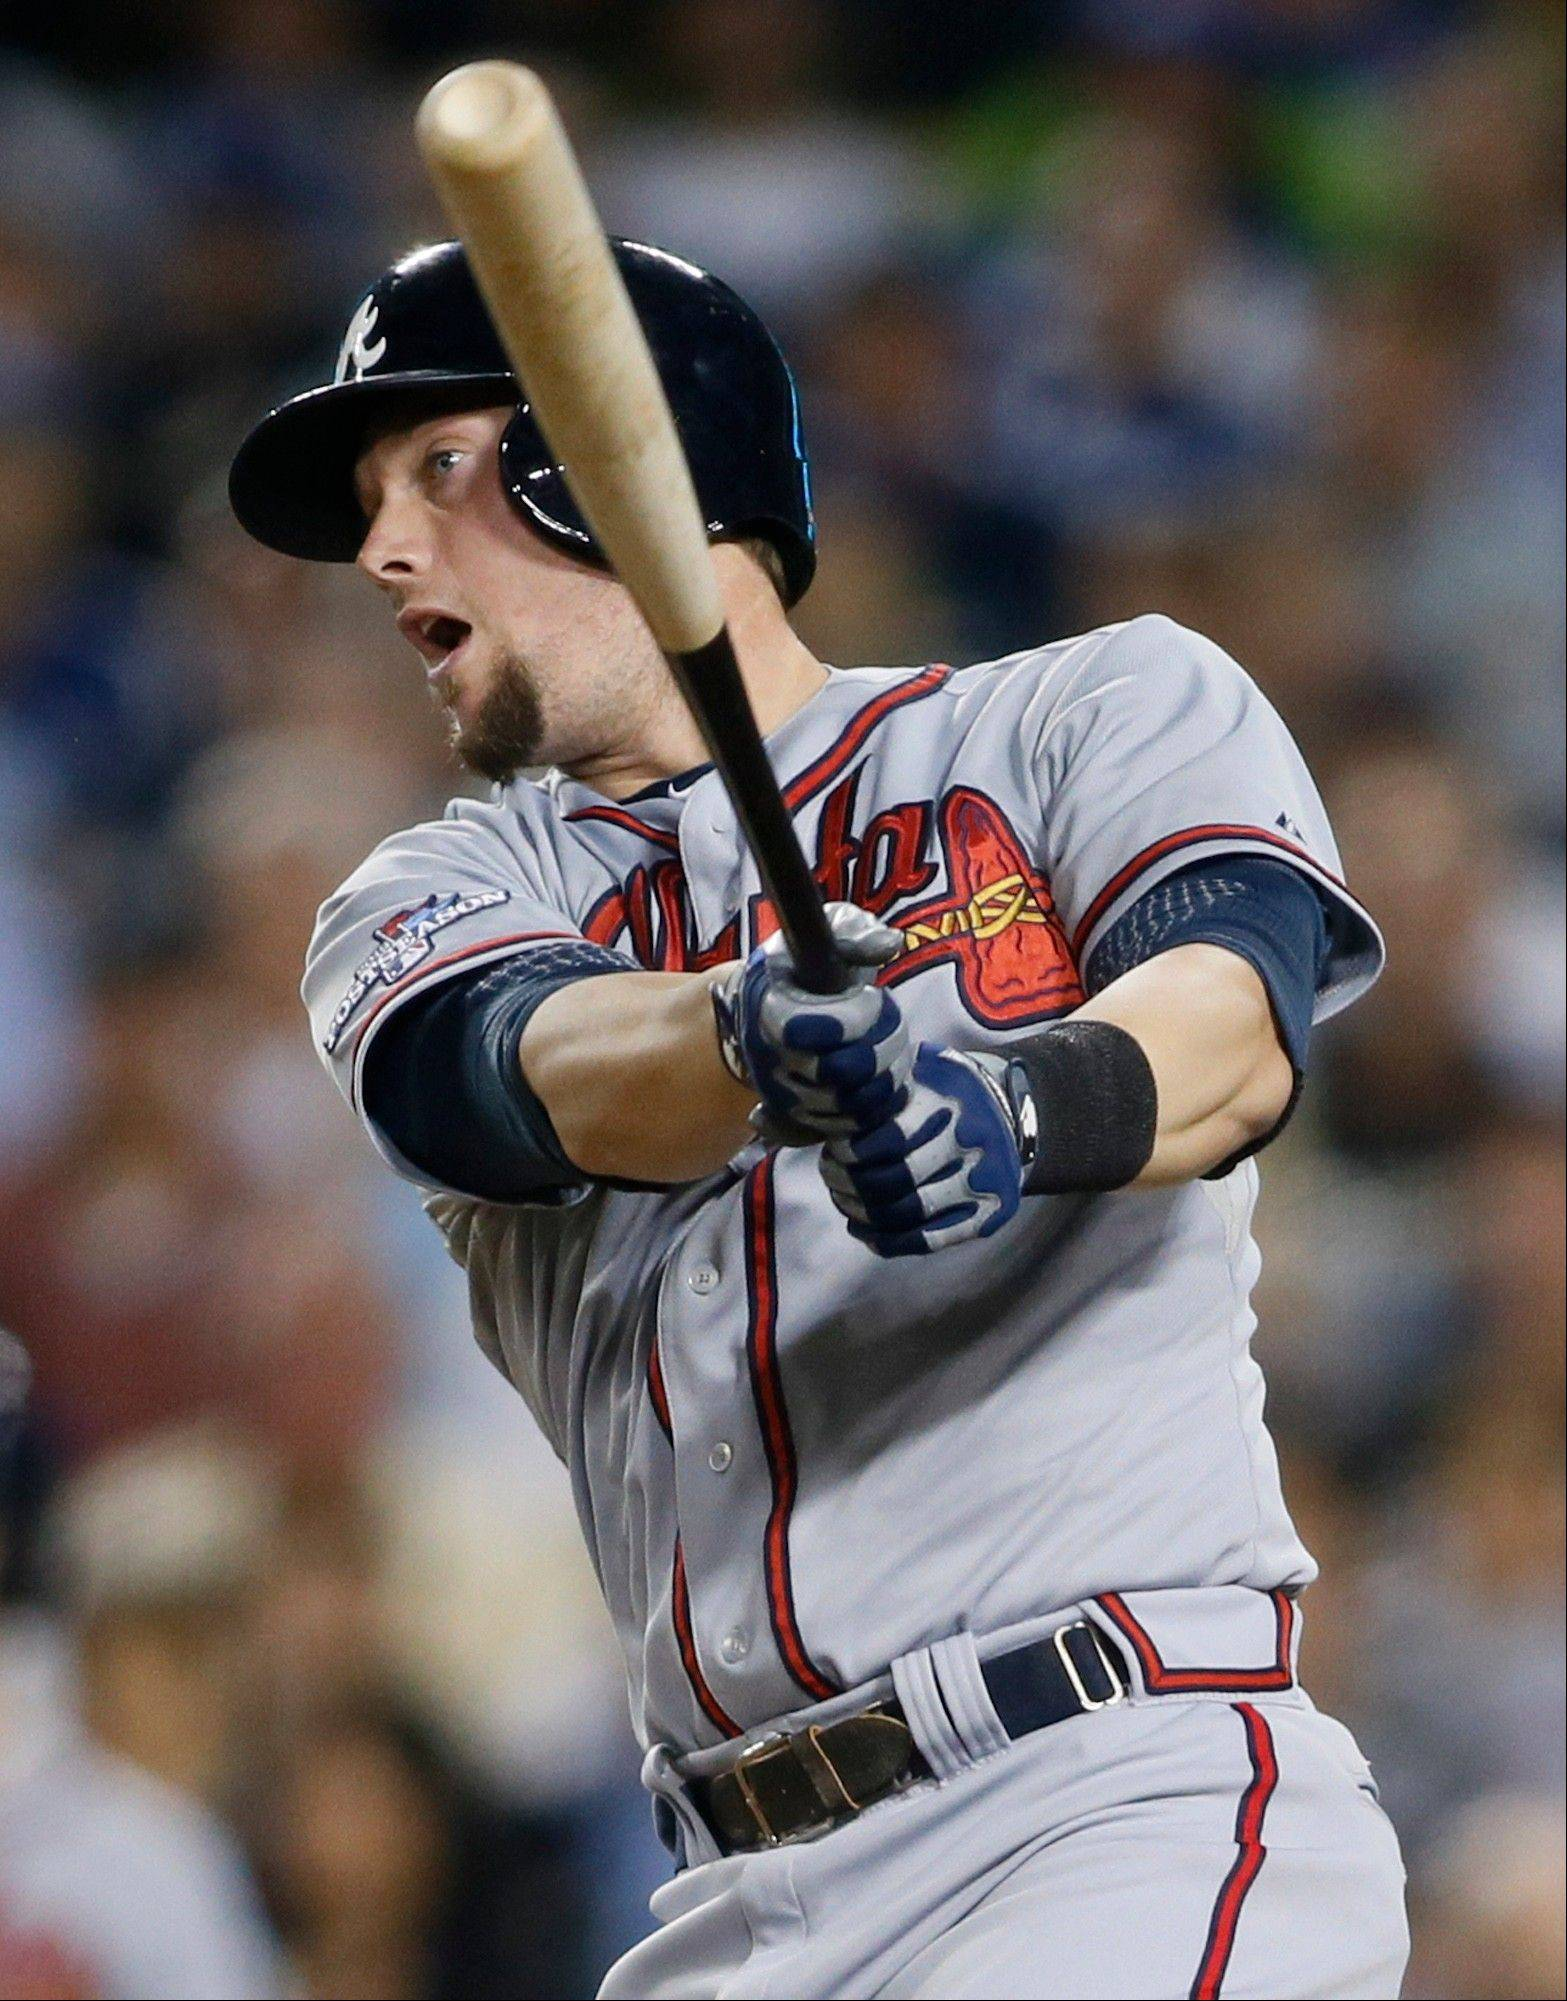 The Braves' Chris Johnson hits an RBI single to score Freddie Freeman in the fourth inning of Game 4 Monday in Los Angeles.